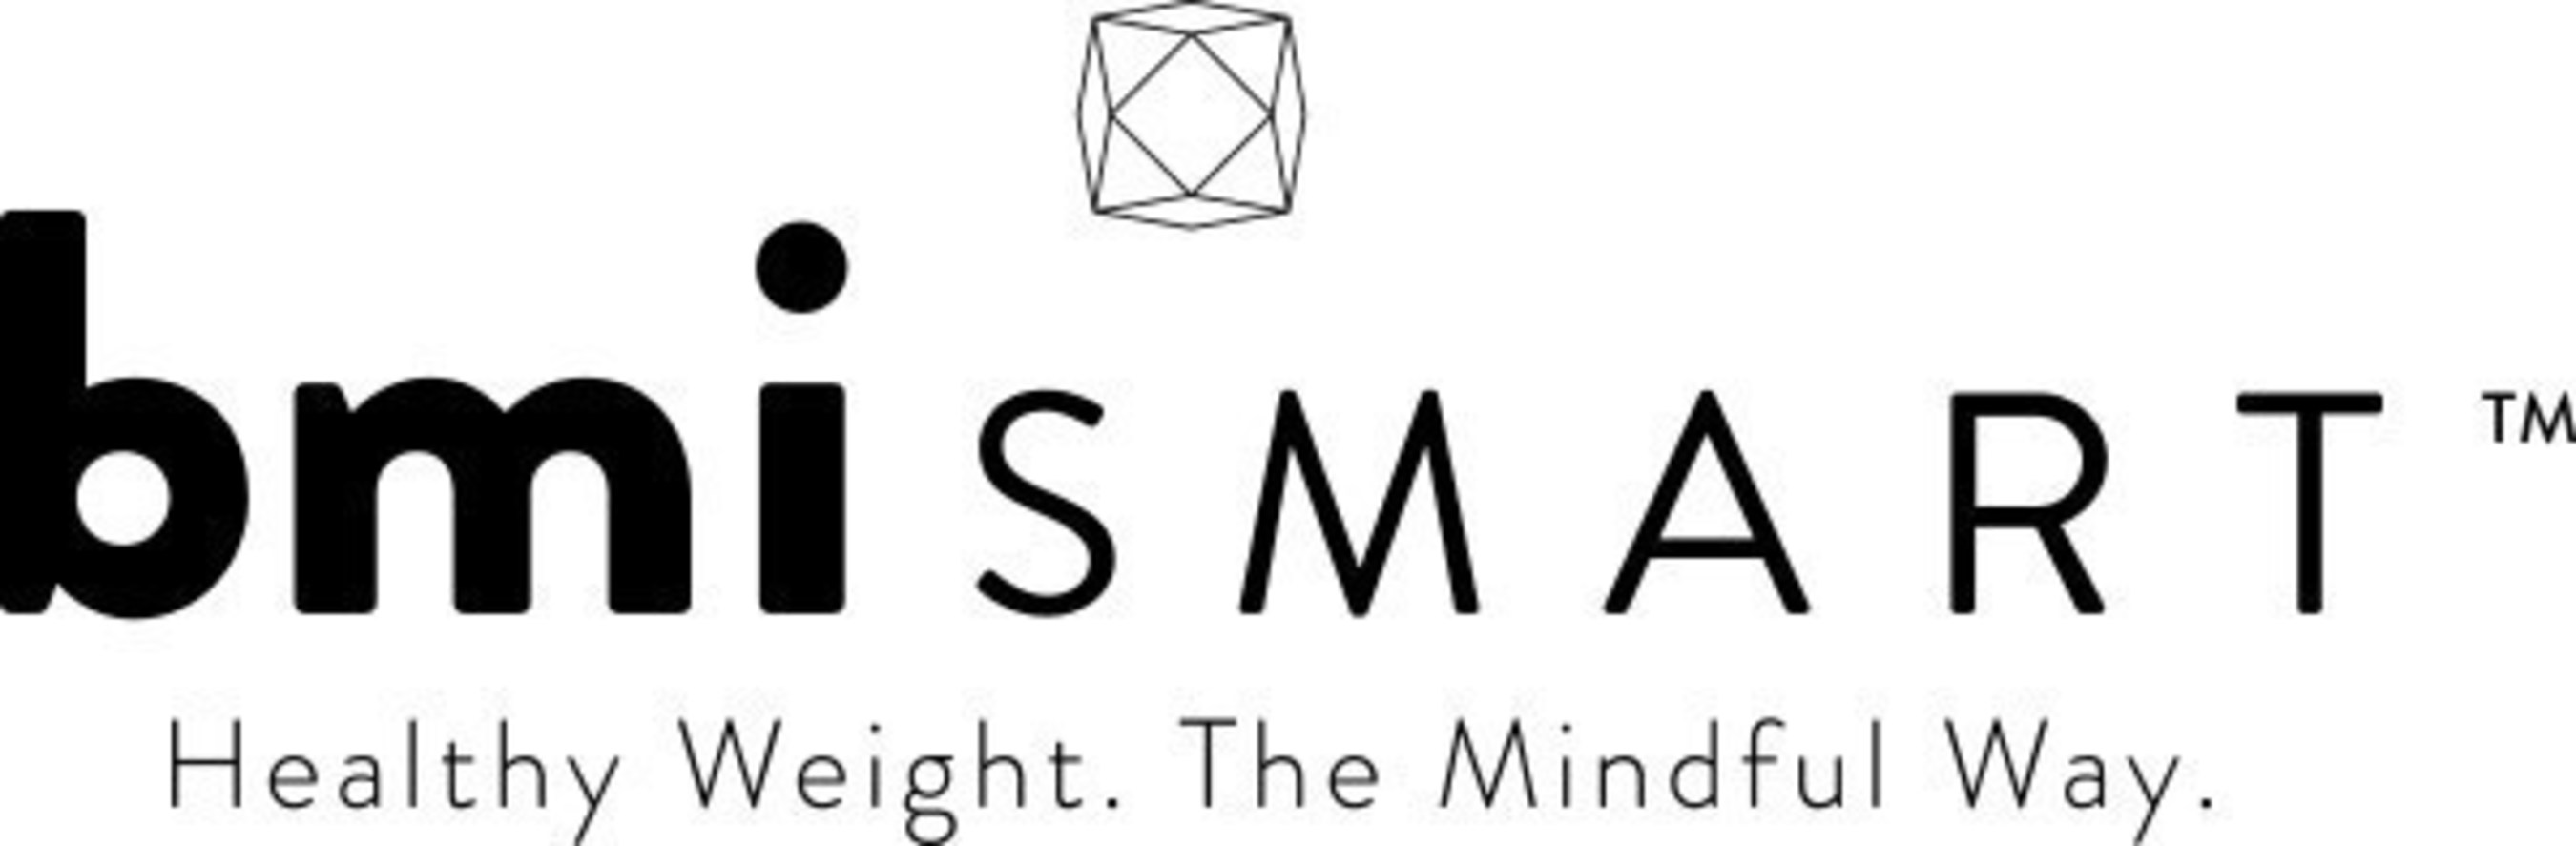 bmiSMART Launches USA Weight Wellness Products & Campaign